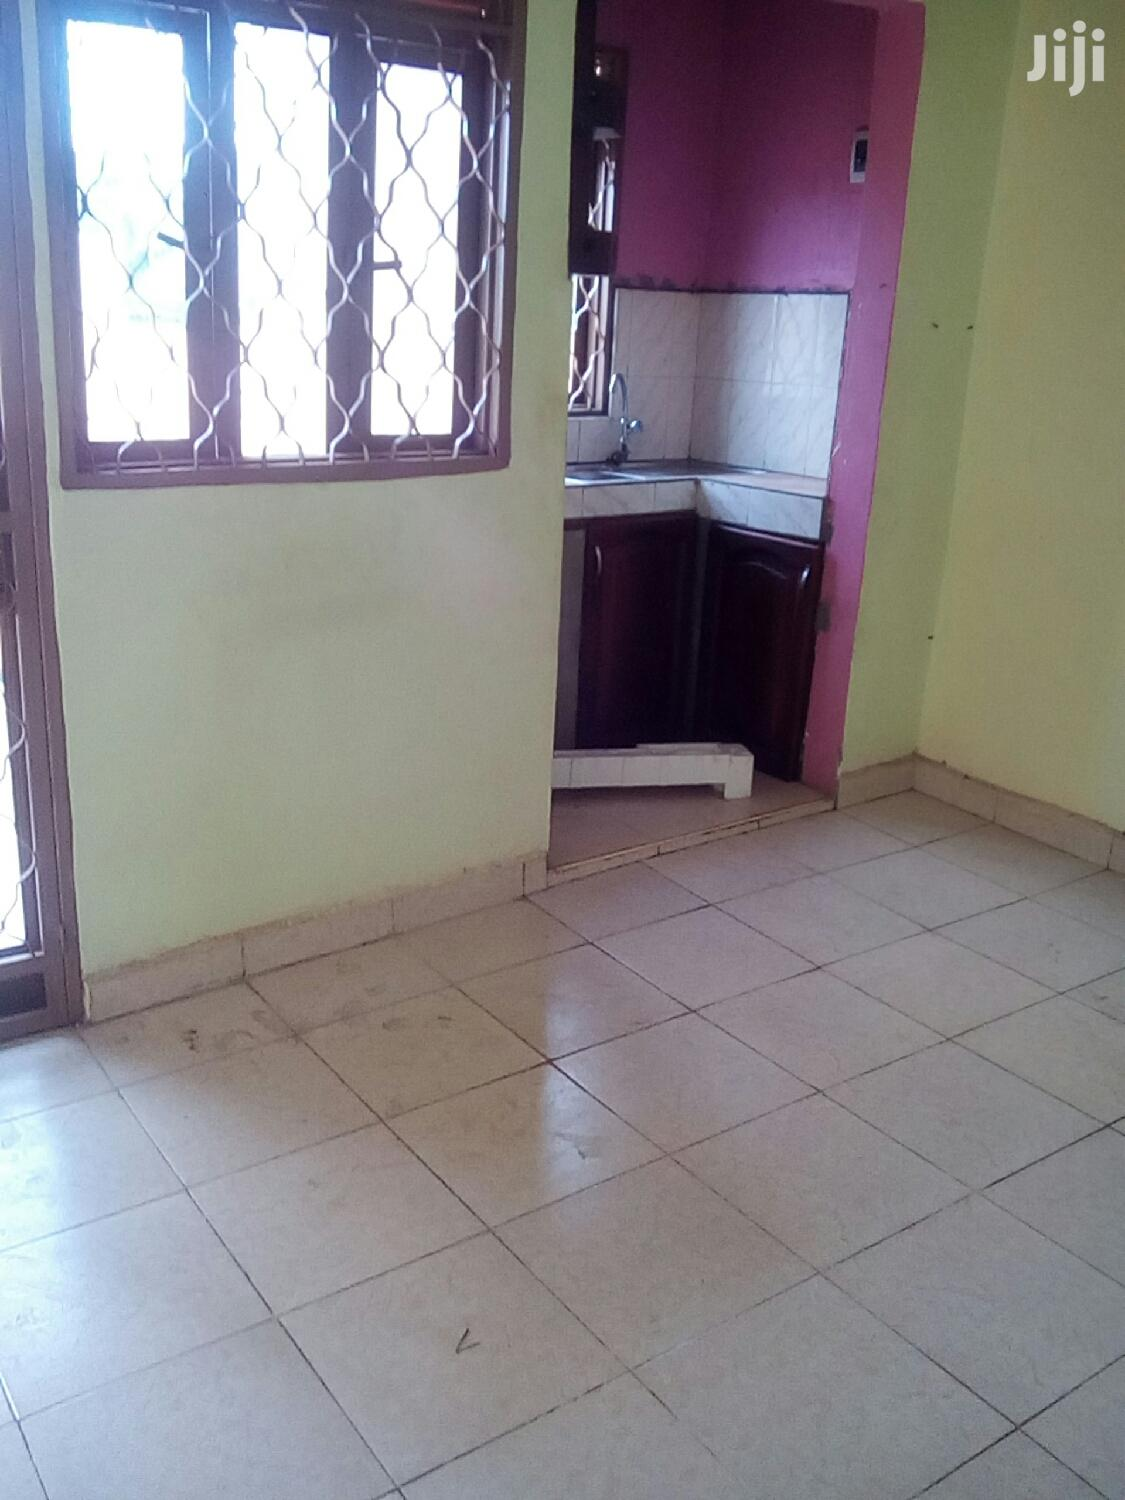 Kisasi One Bedrooms House For Rent | Houses & Apartments For Rent for sale in Kampala, Central Region, Uganda